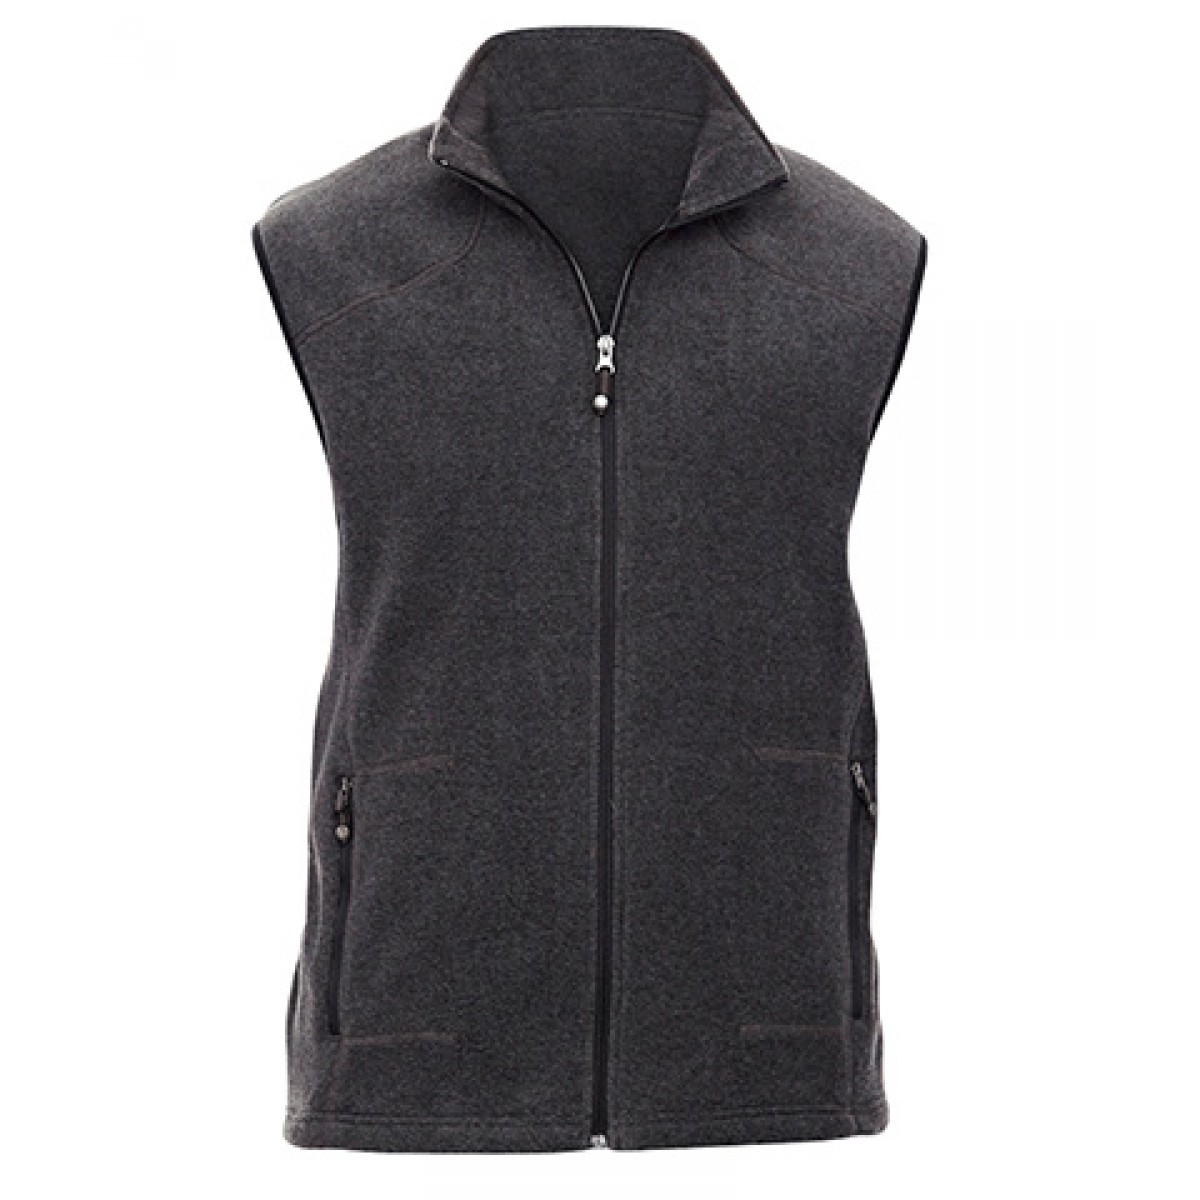 Men's Voyage Fleece Vest-Gray -L